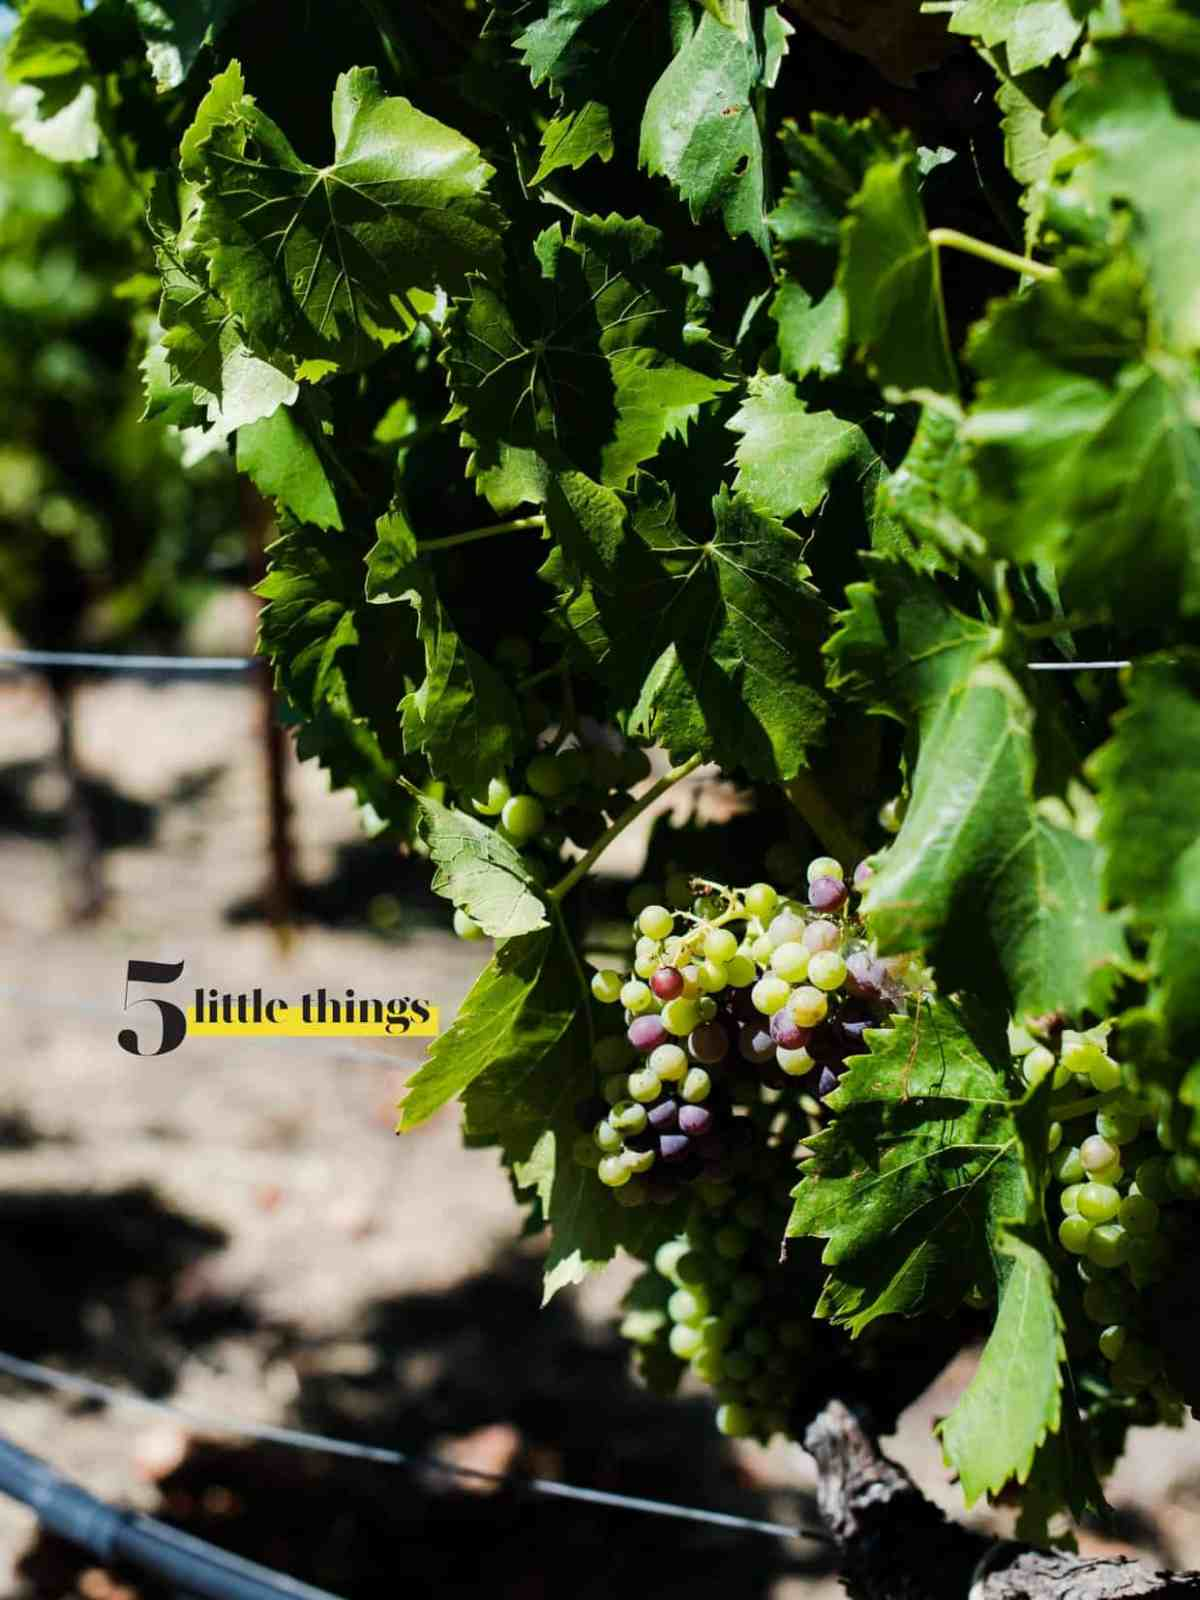 Grapes growing on the vine in Wine Country.